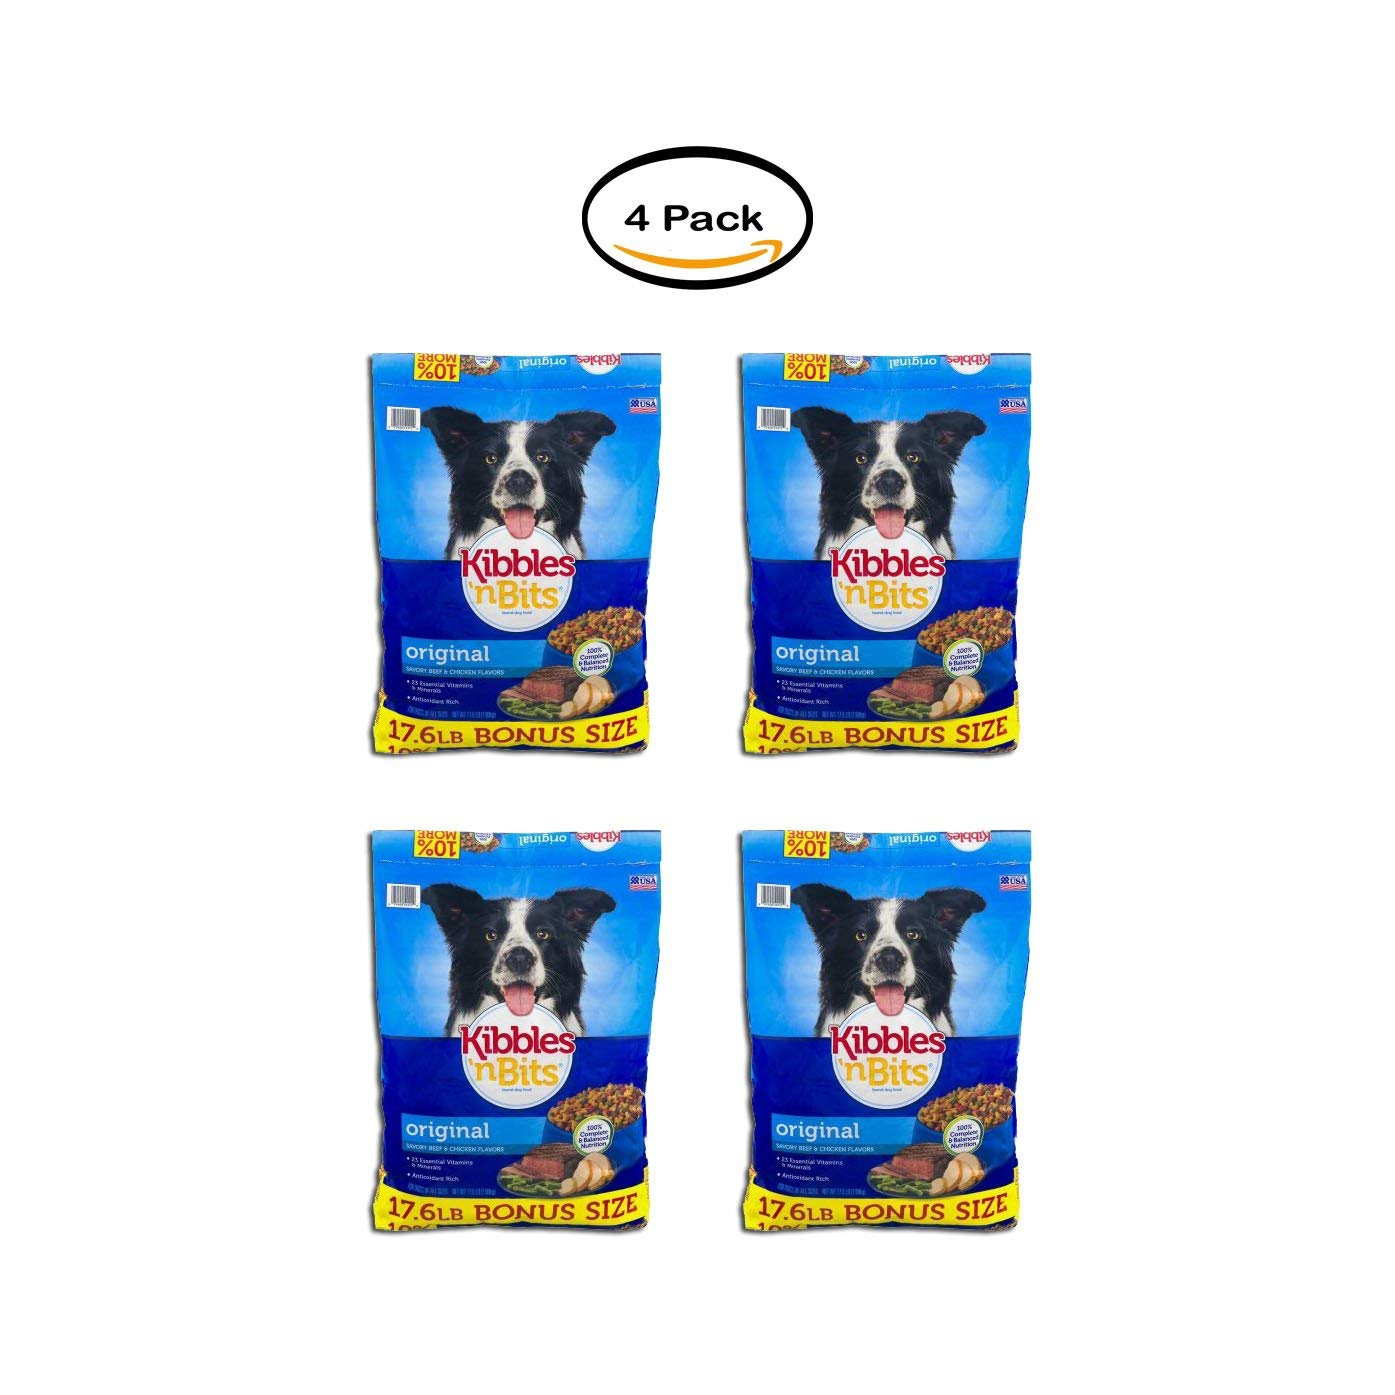 PACK OF 4 - Kibbles 'N Bits Original Savory Beef and Chicken Dry Dog Food, 17.6 Lb